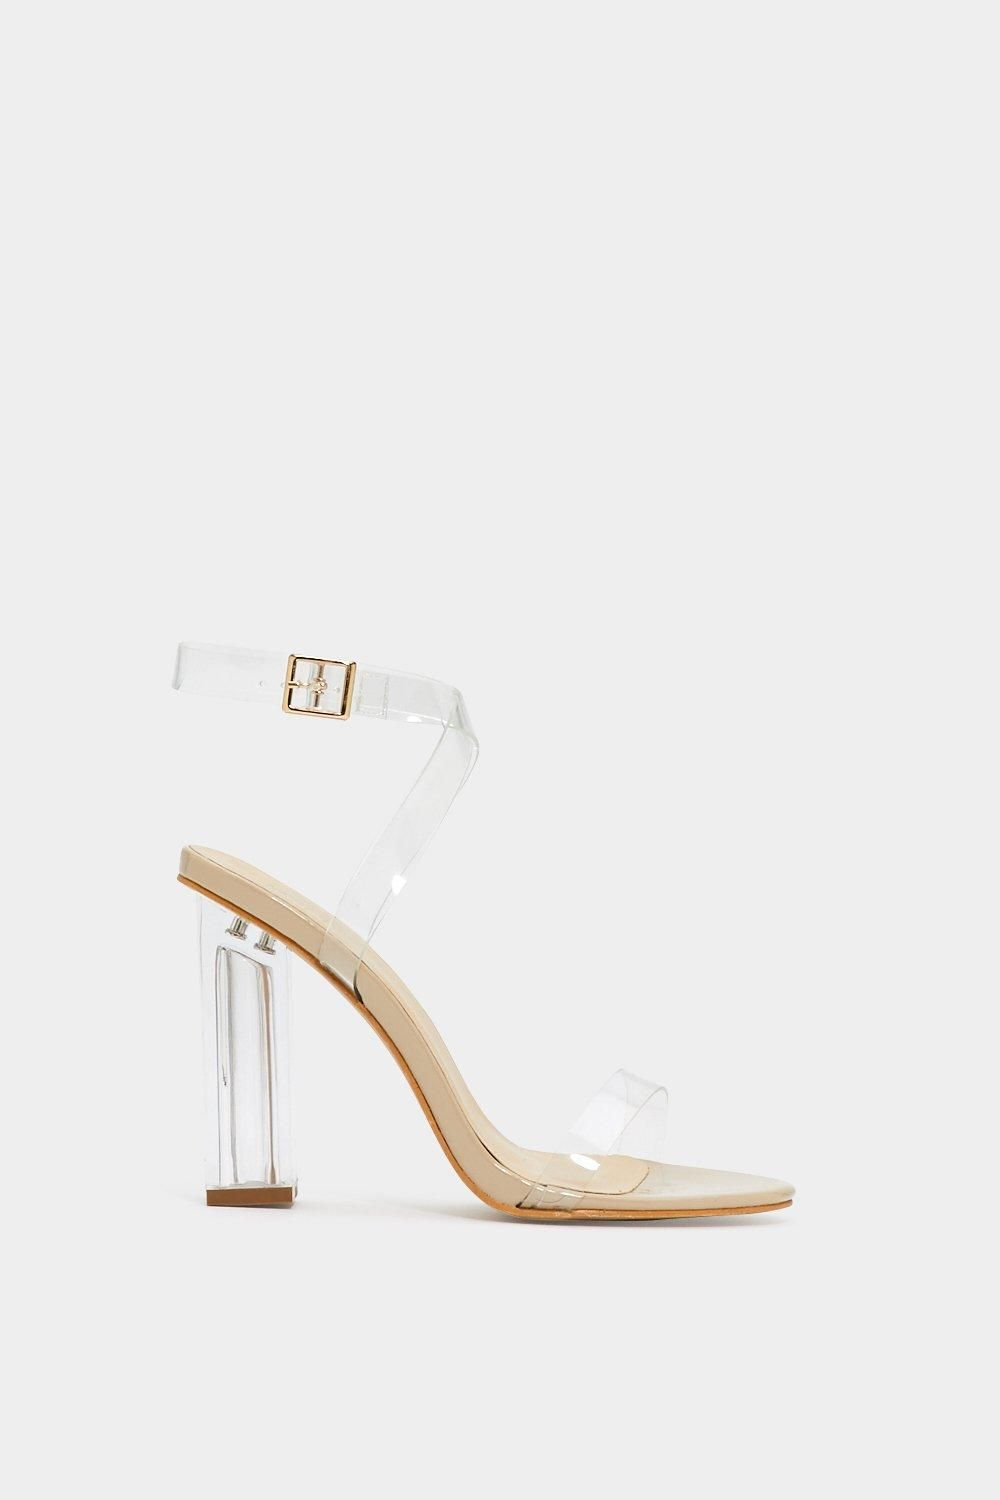 60f48789a8a0 Clear things up. The Let s Be Clear Heel features a lucite block heel